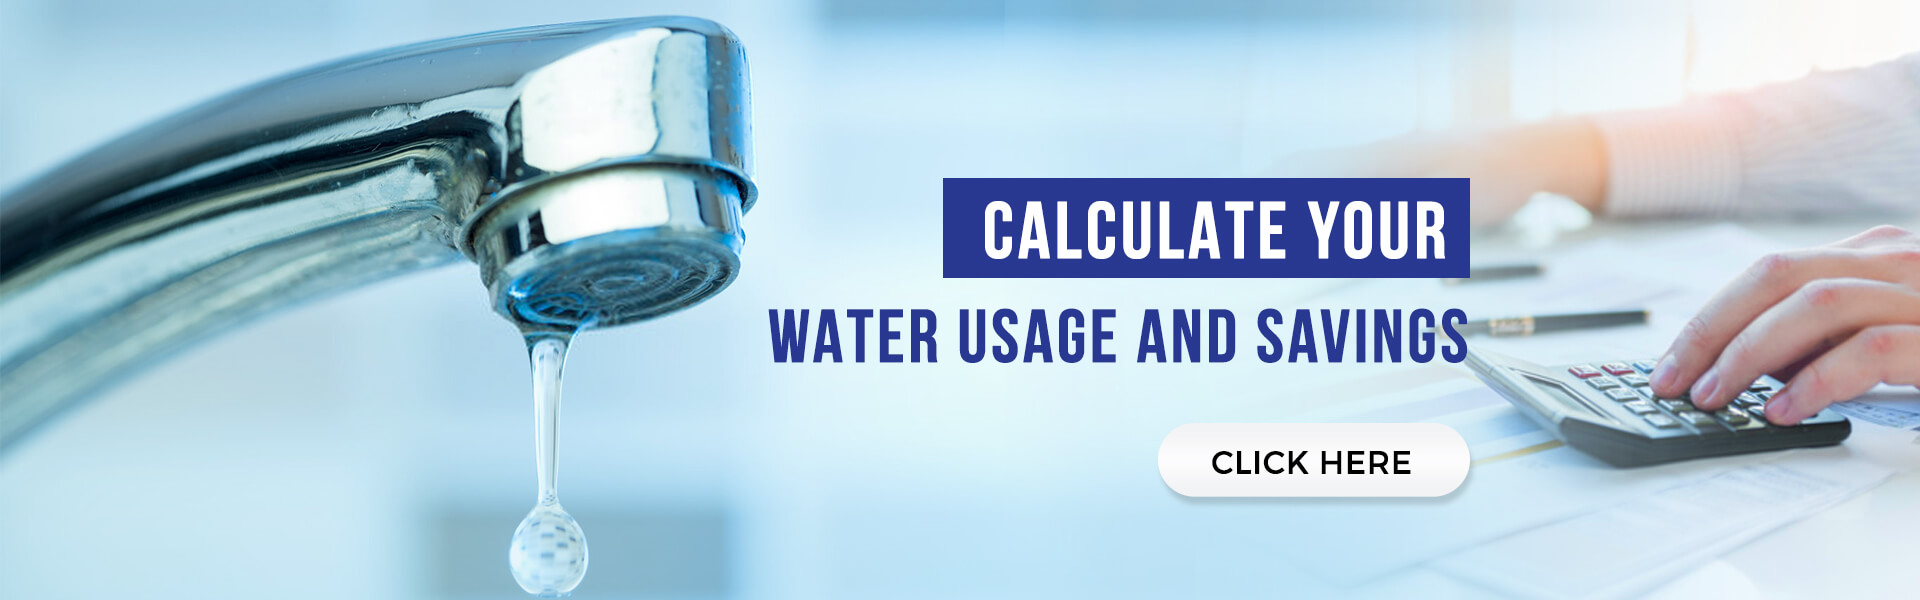 calculate-water-usage